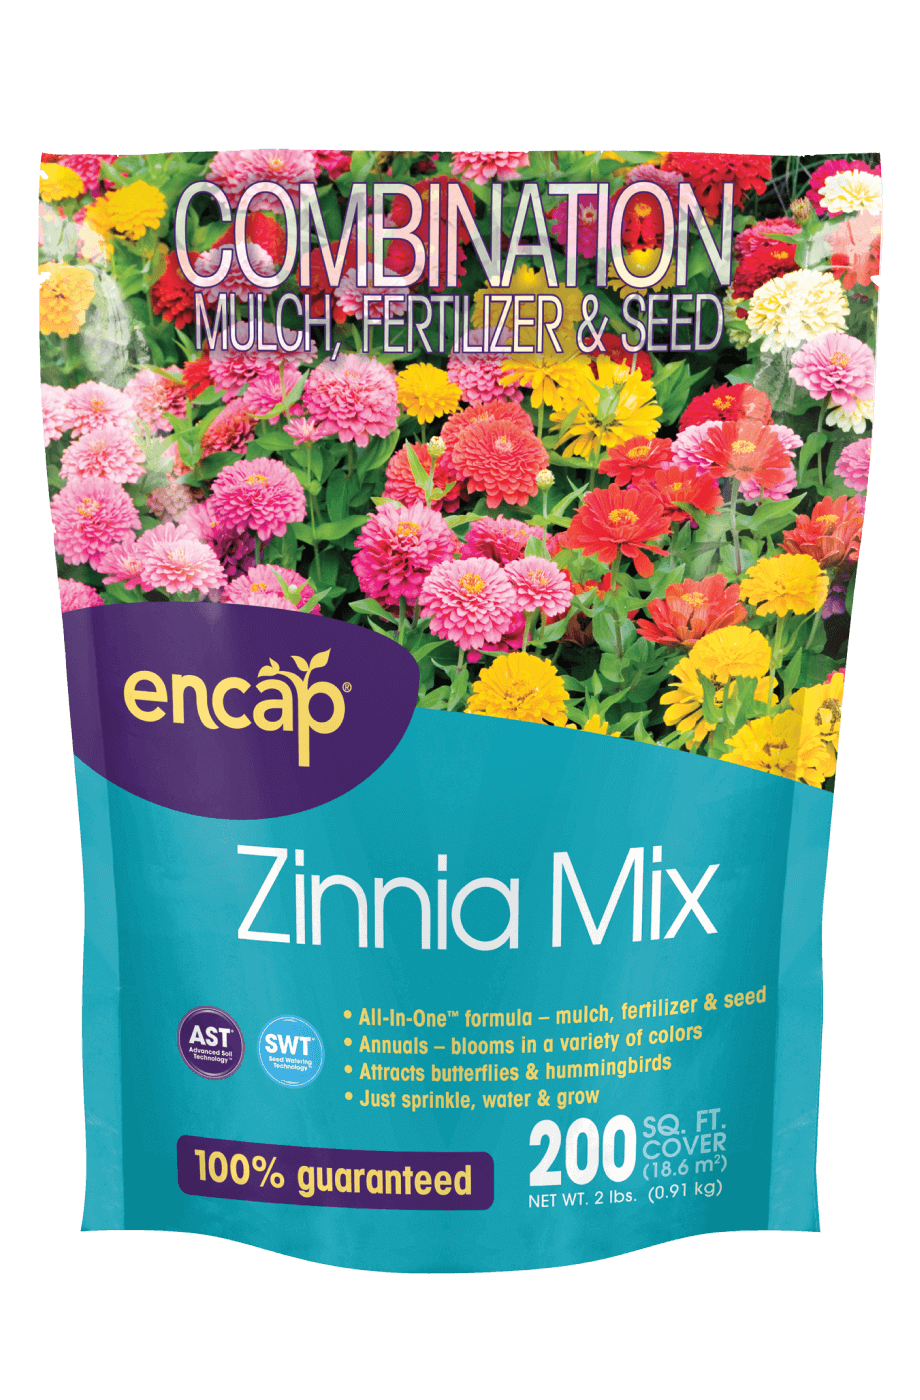 Zinnia Mix Package